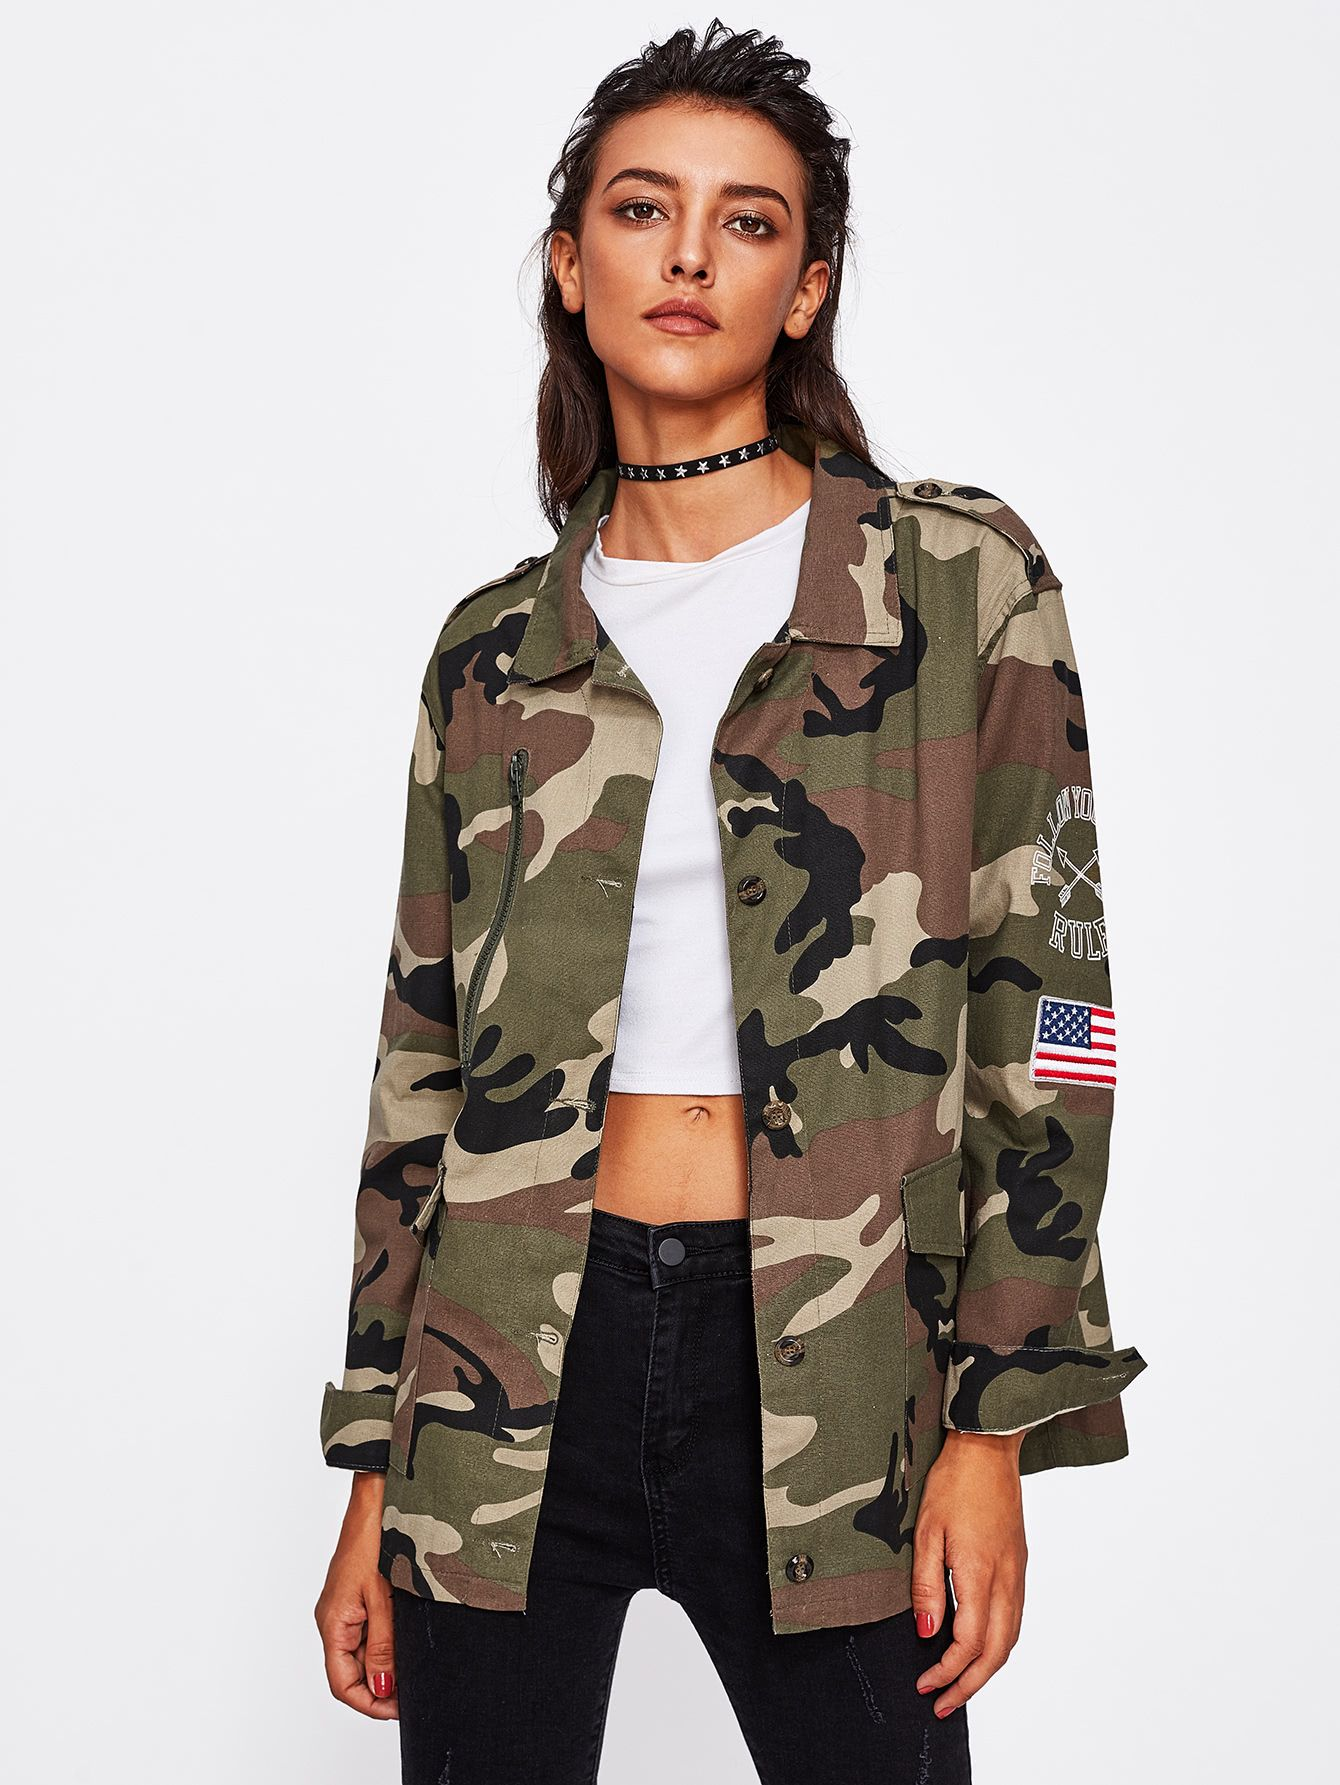 2019 year style- How to camouflage a wear print jacket